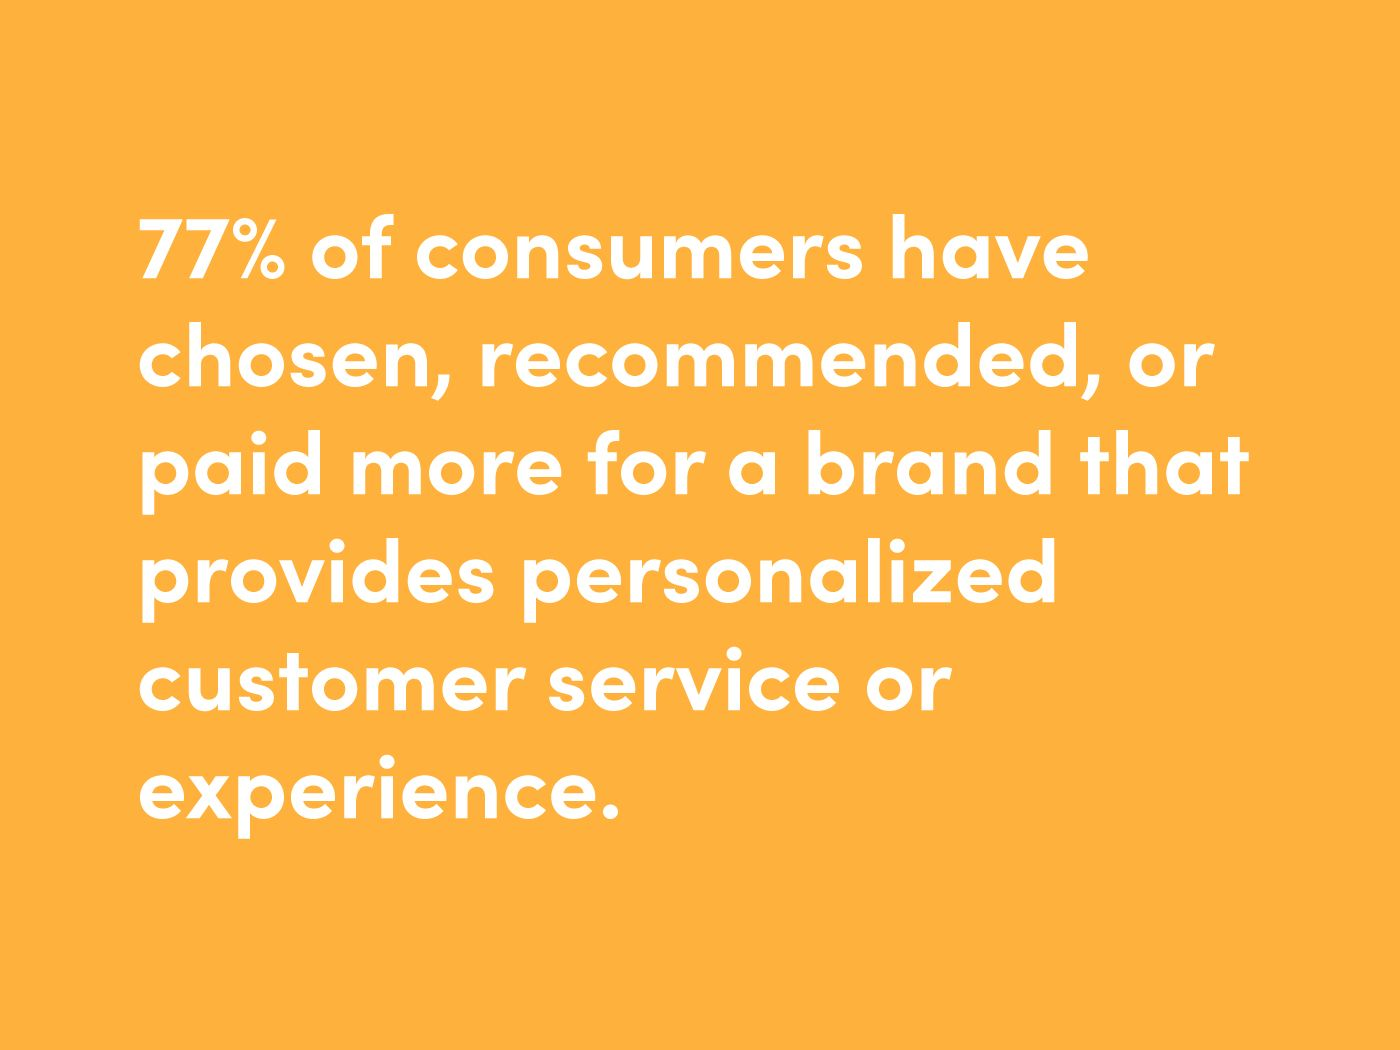 Customers demand personalized service